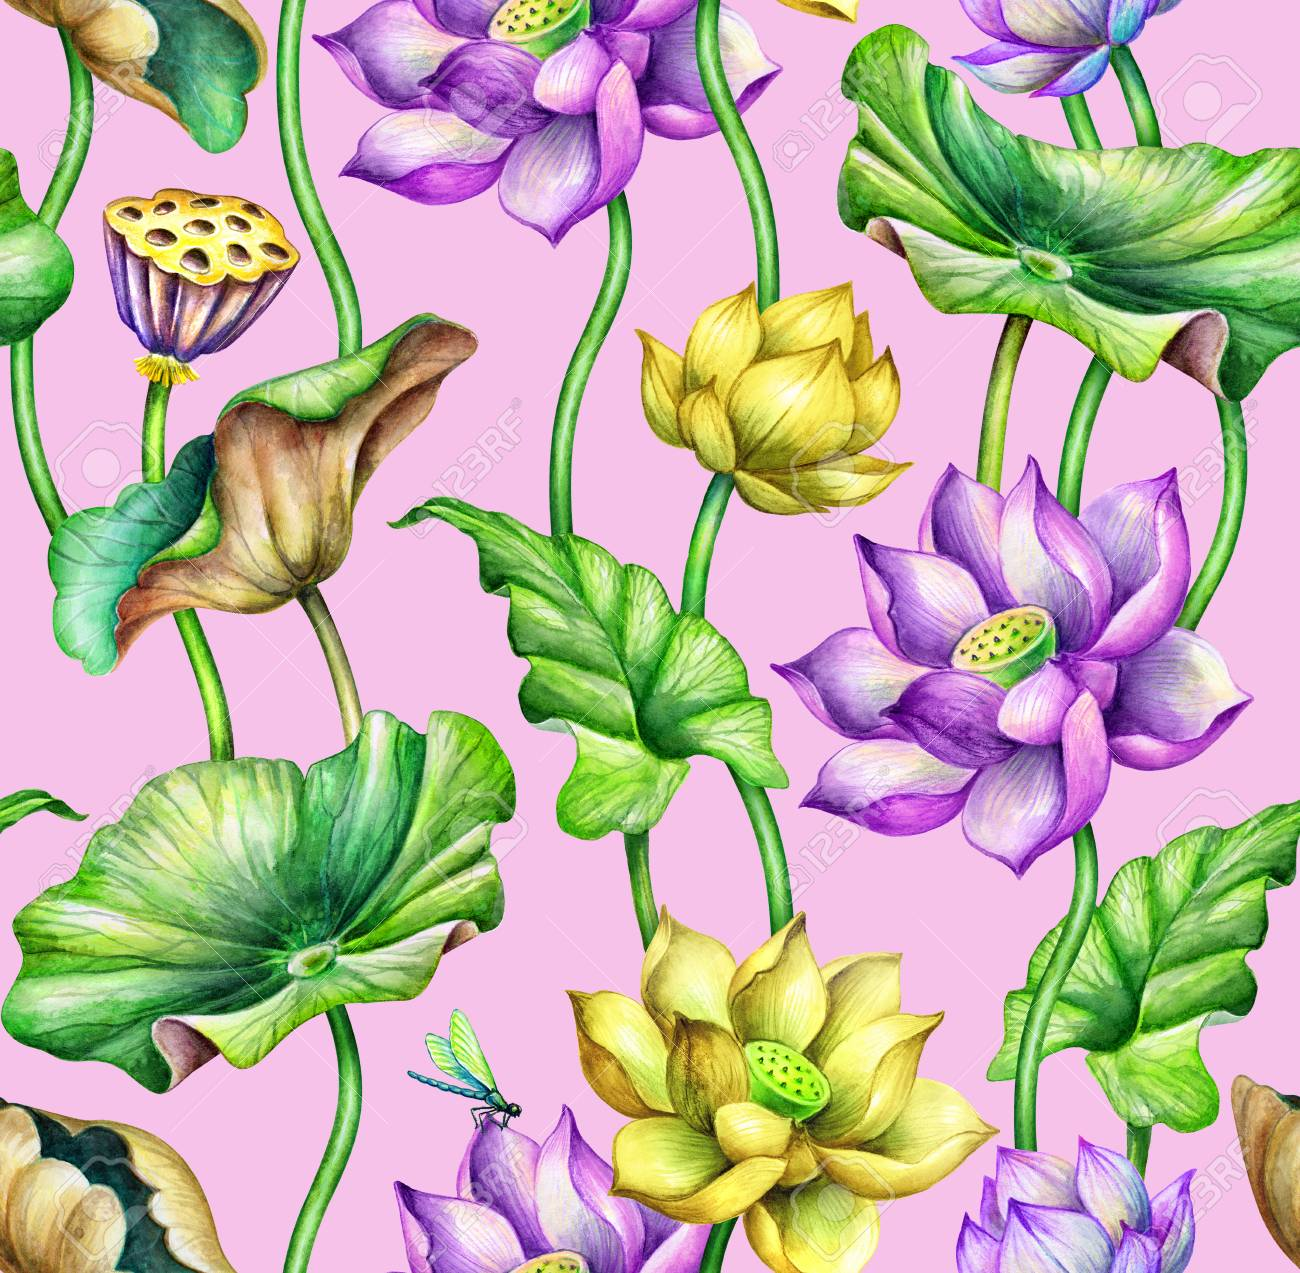 Seamless Botanical Pattern Watercolor Floral Background Pink